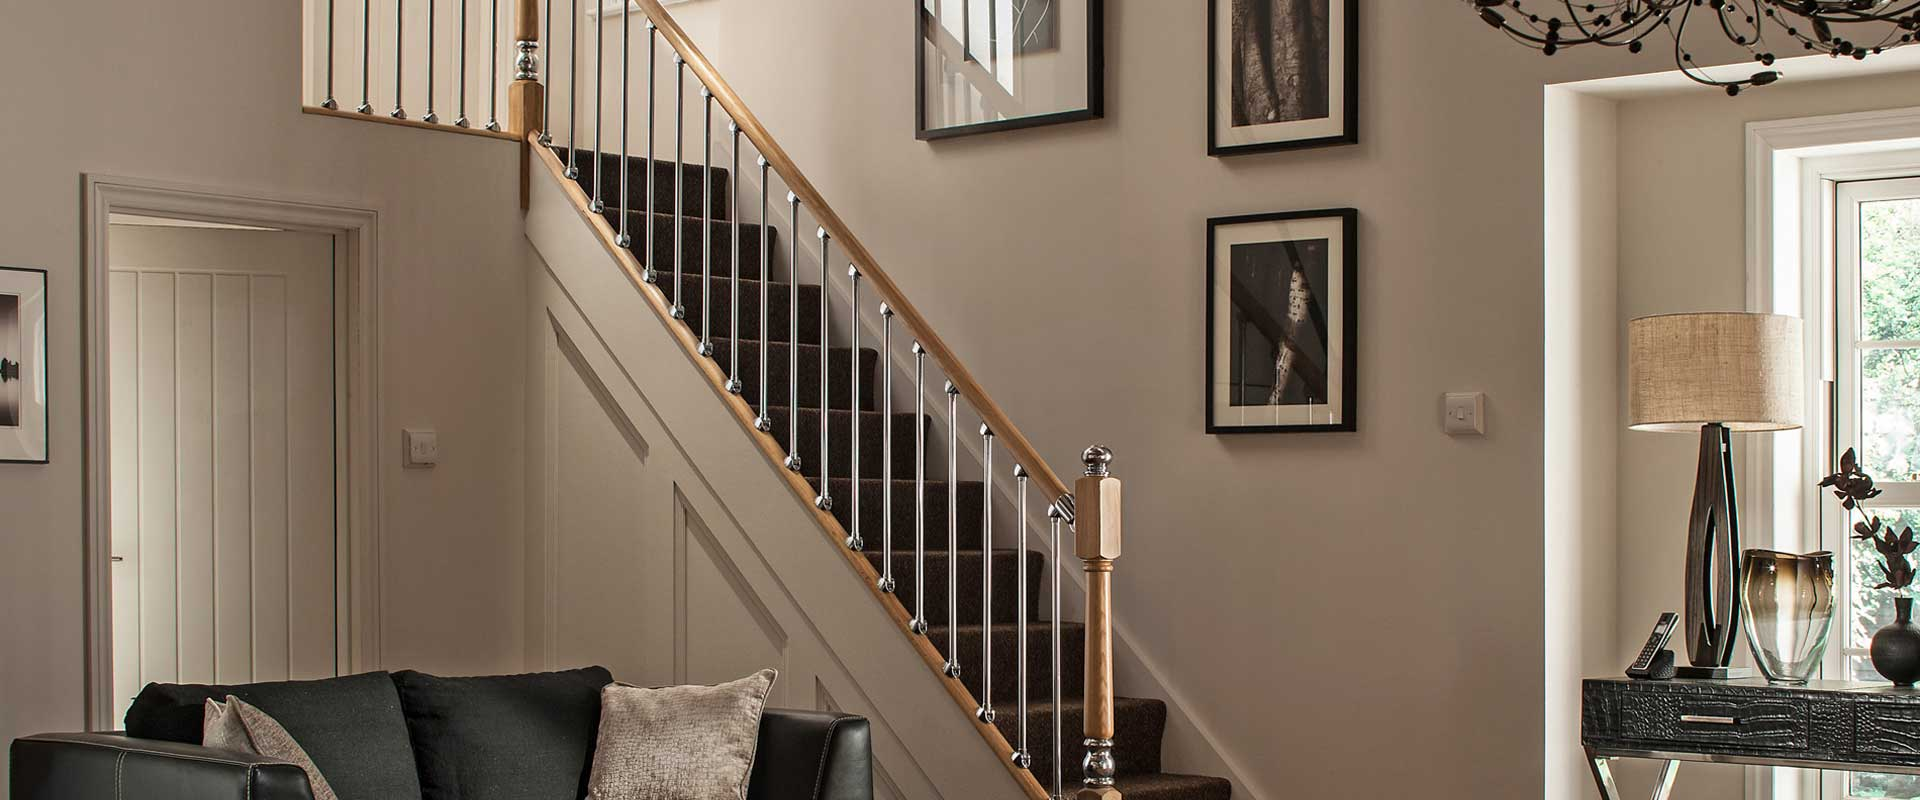 Design & installation of staircases in Lytham & Lancashire